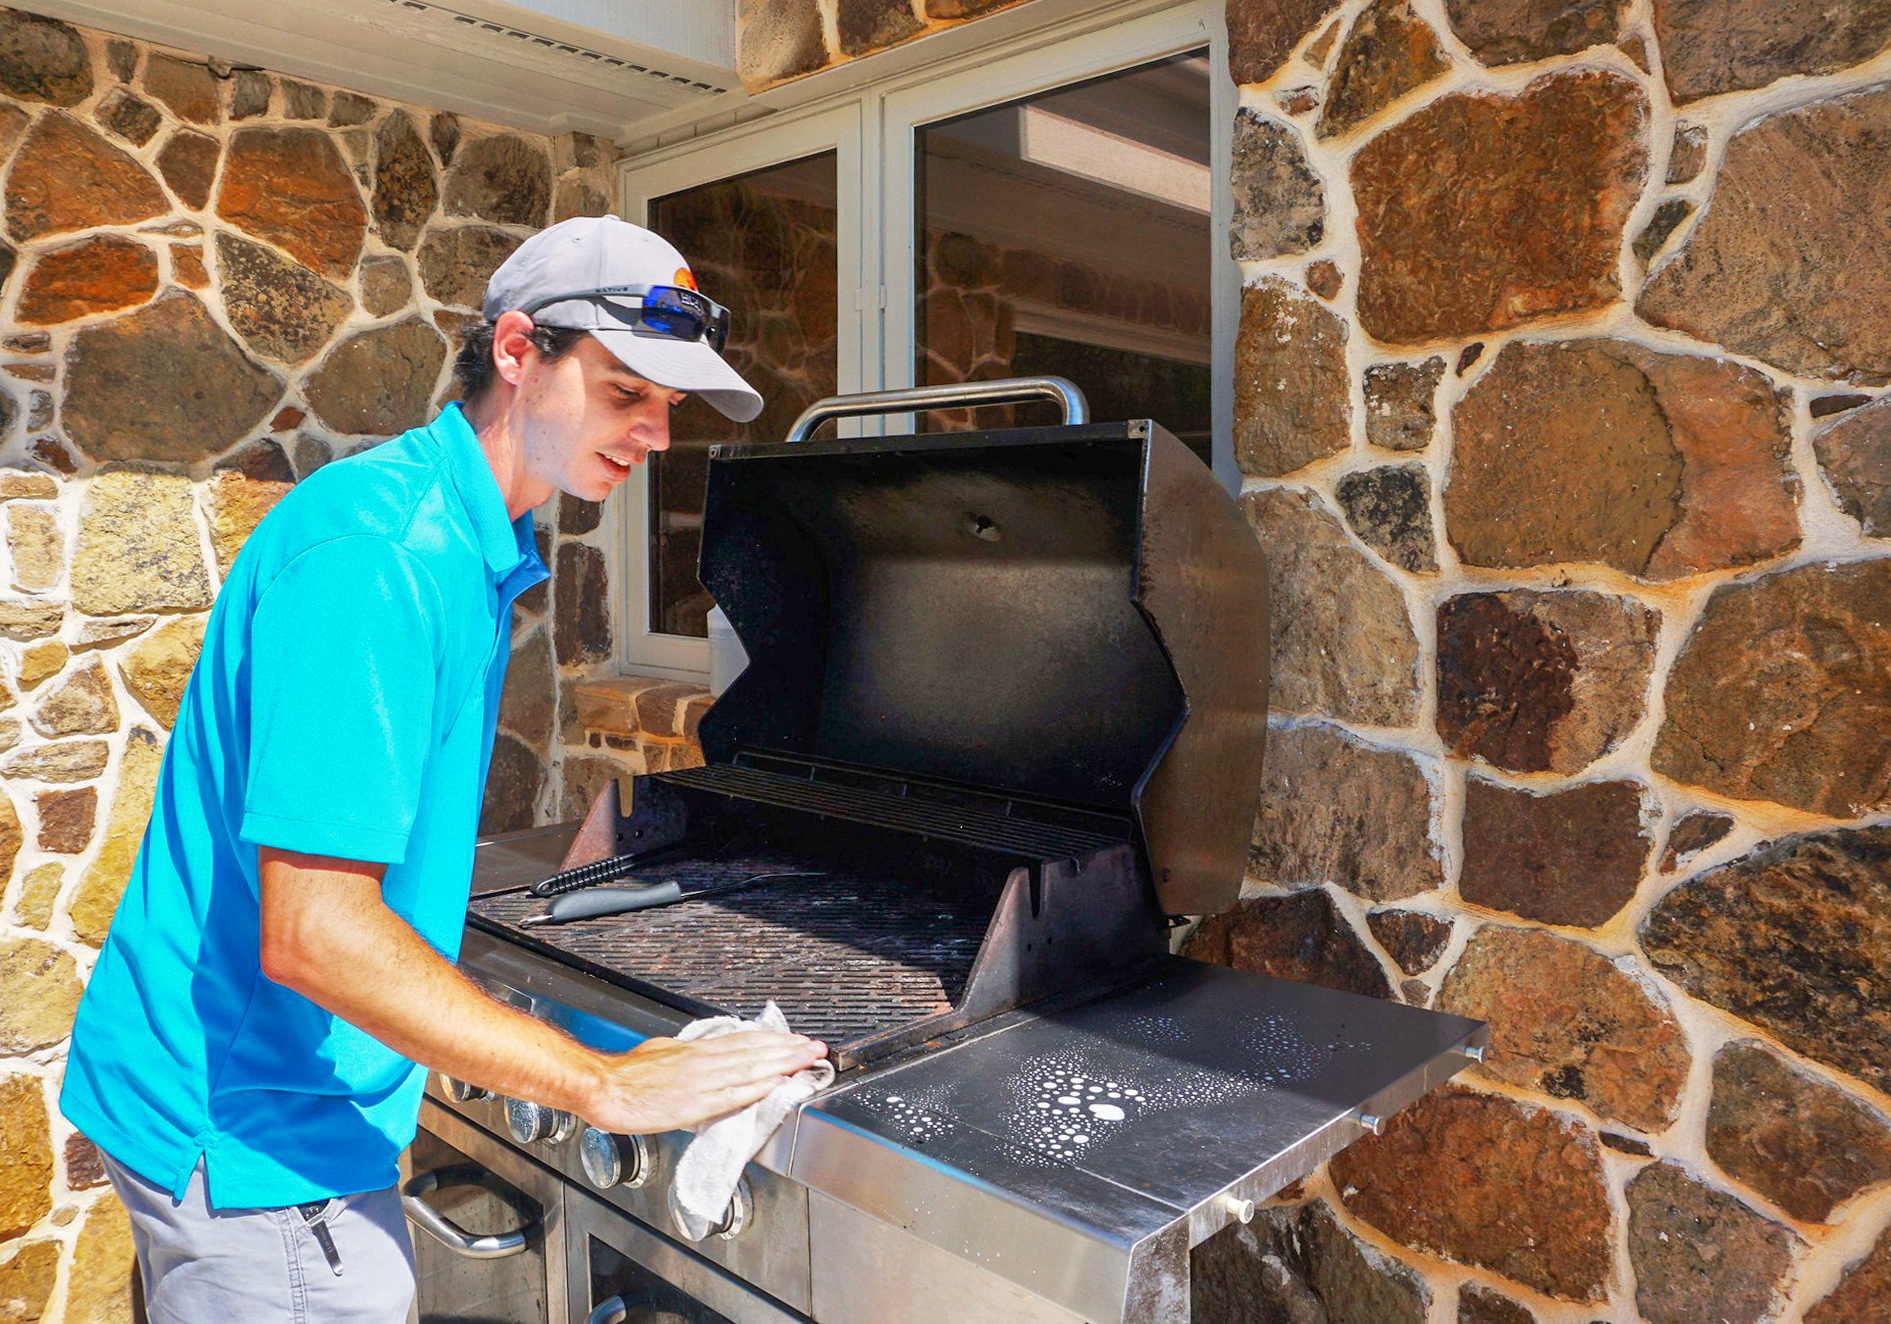 Property care- HCPL maintenance team cleaning a grill for check in